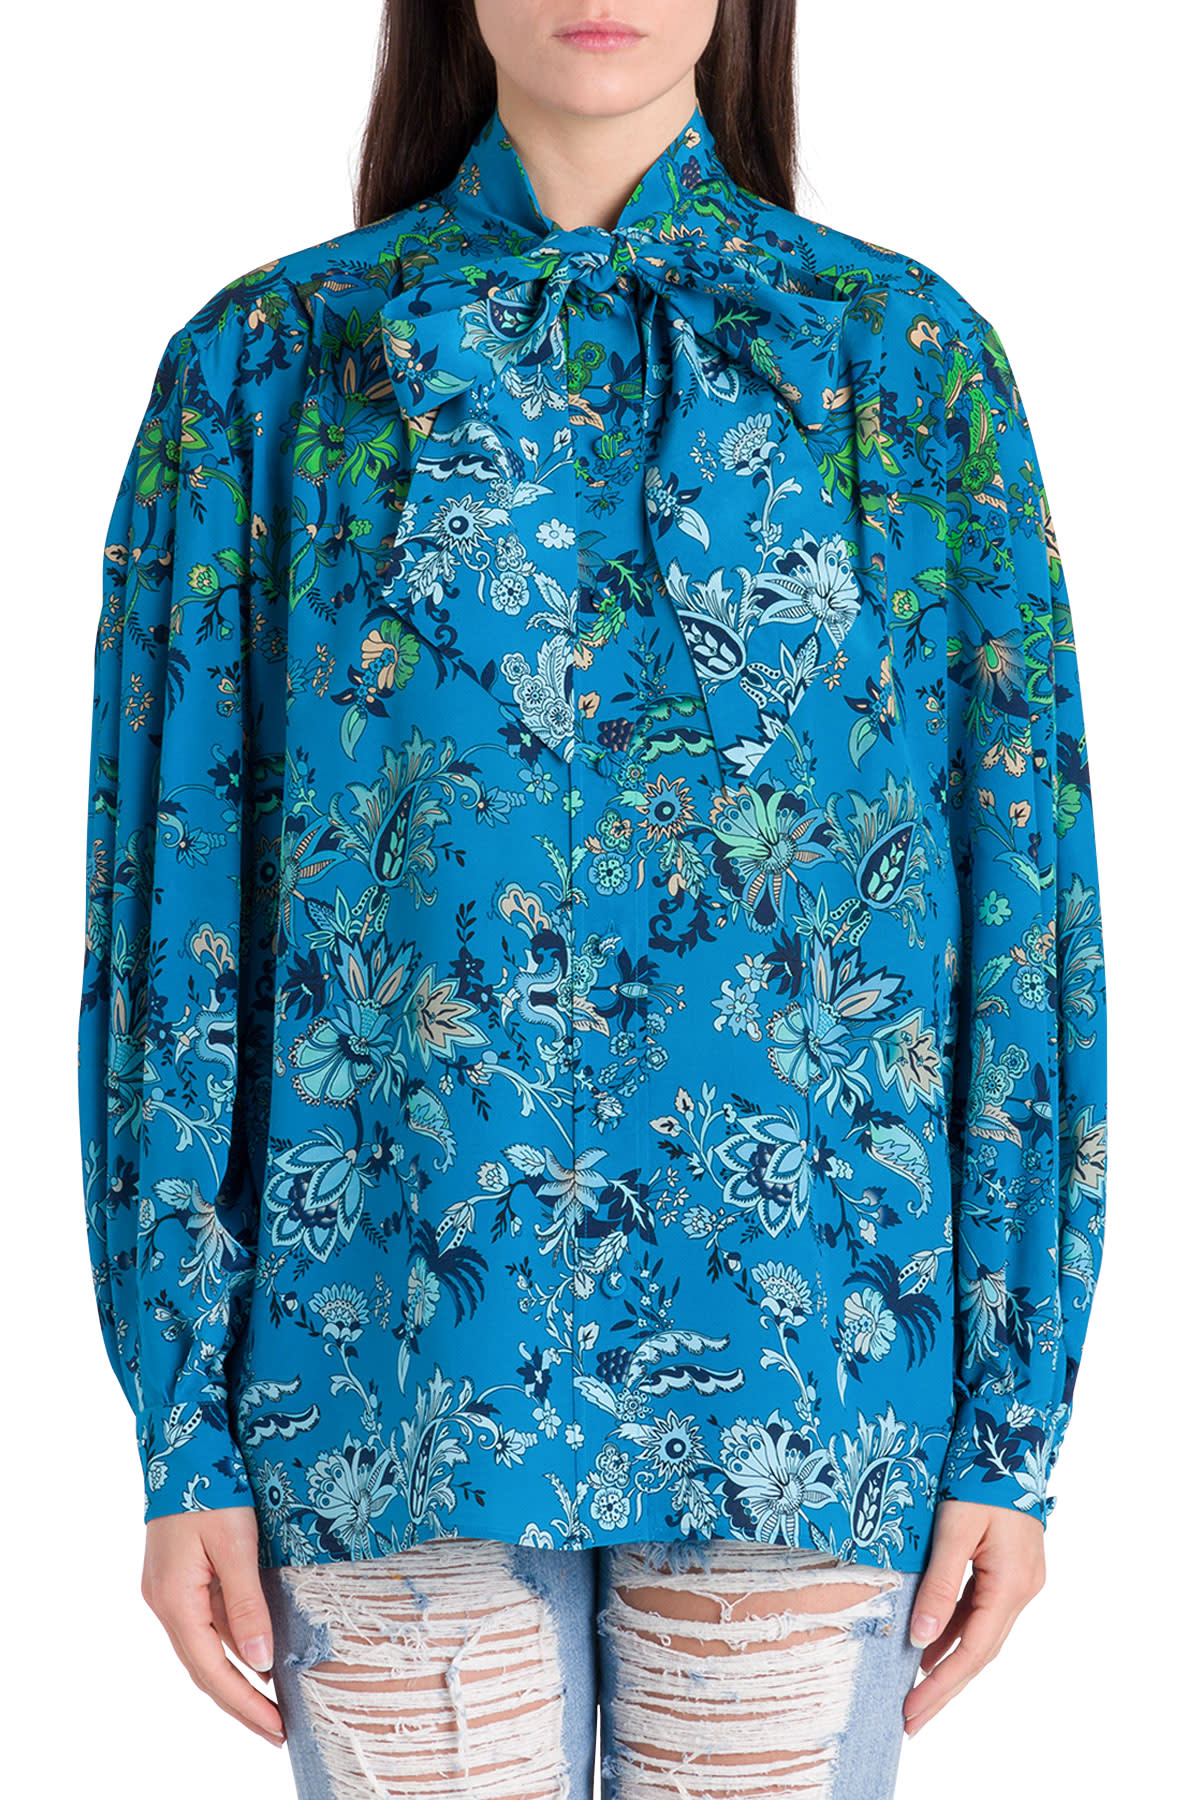 Givenchy Floral Blouse